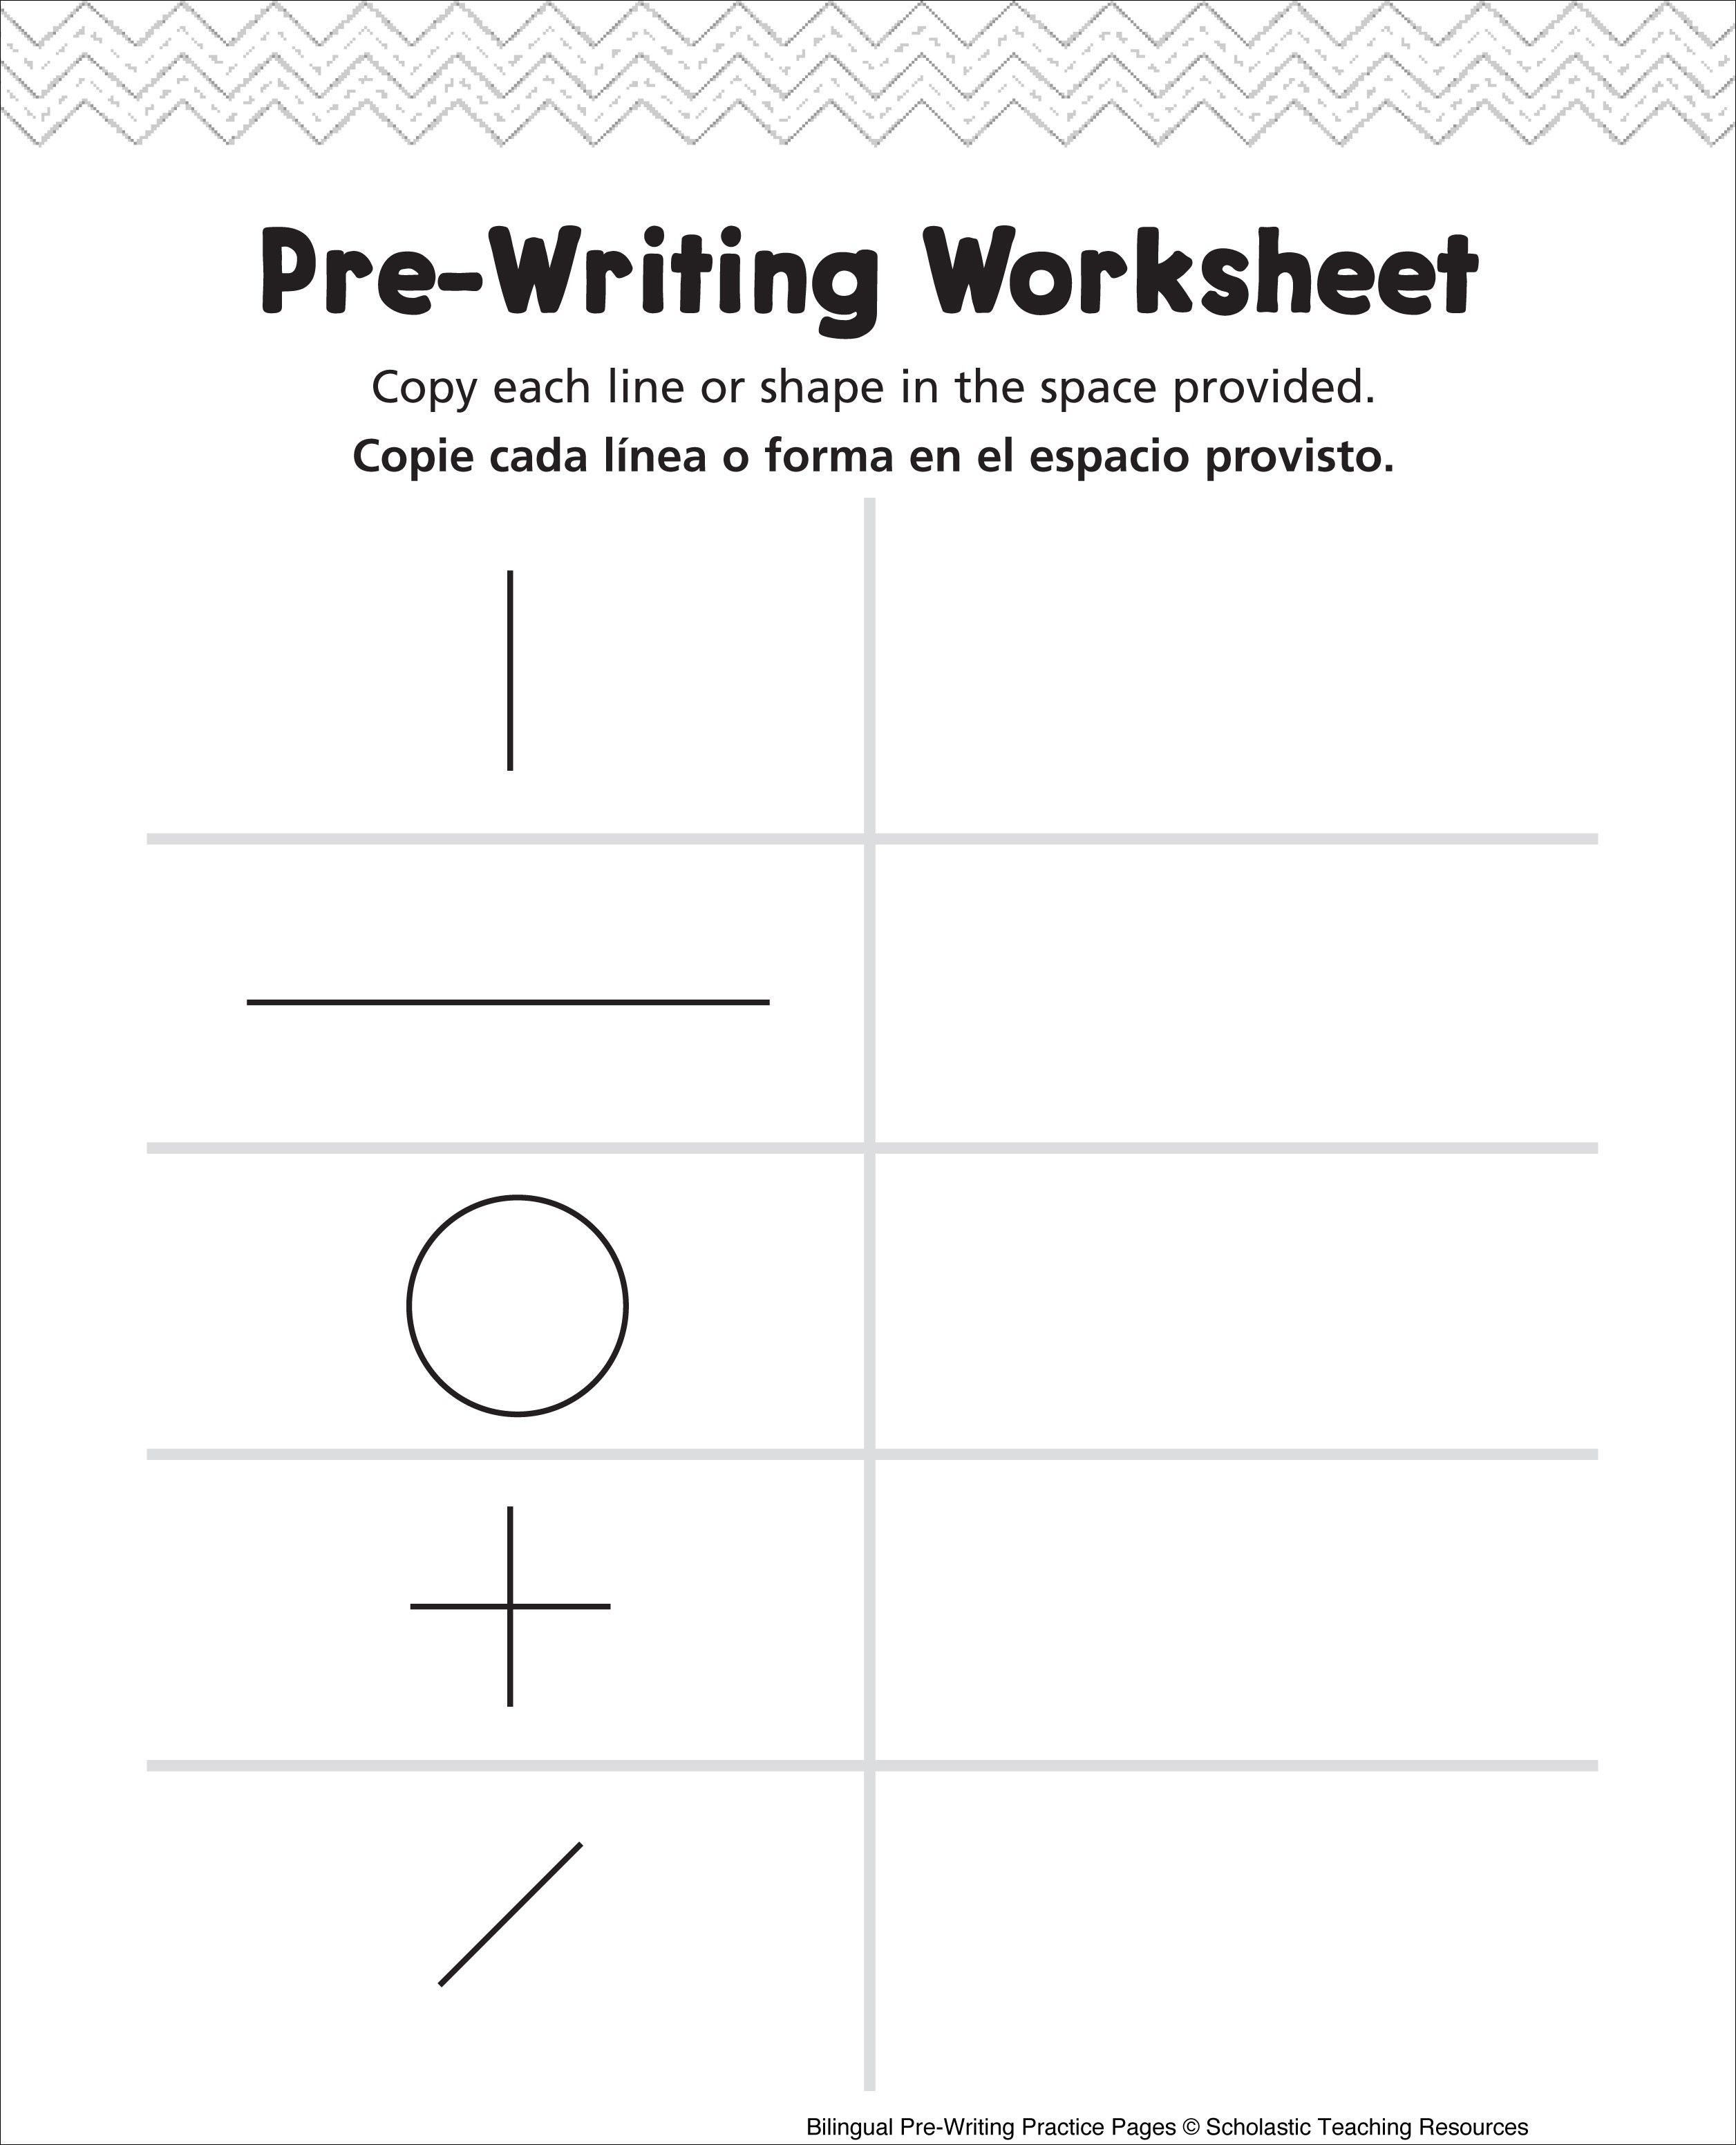 Pre Writing Worksheet Bilingual Practice Page | Pre-writing ...